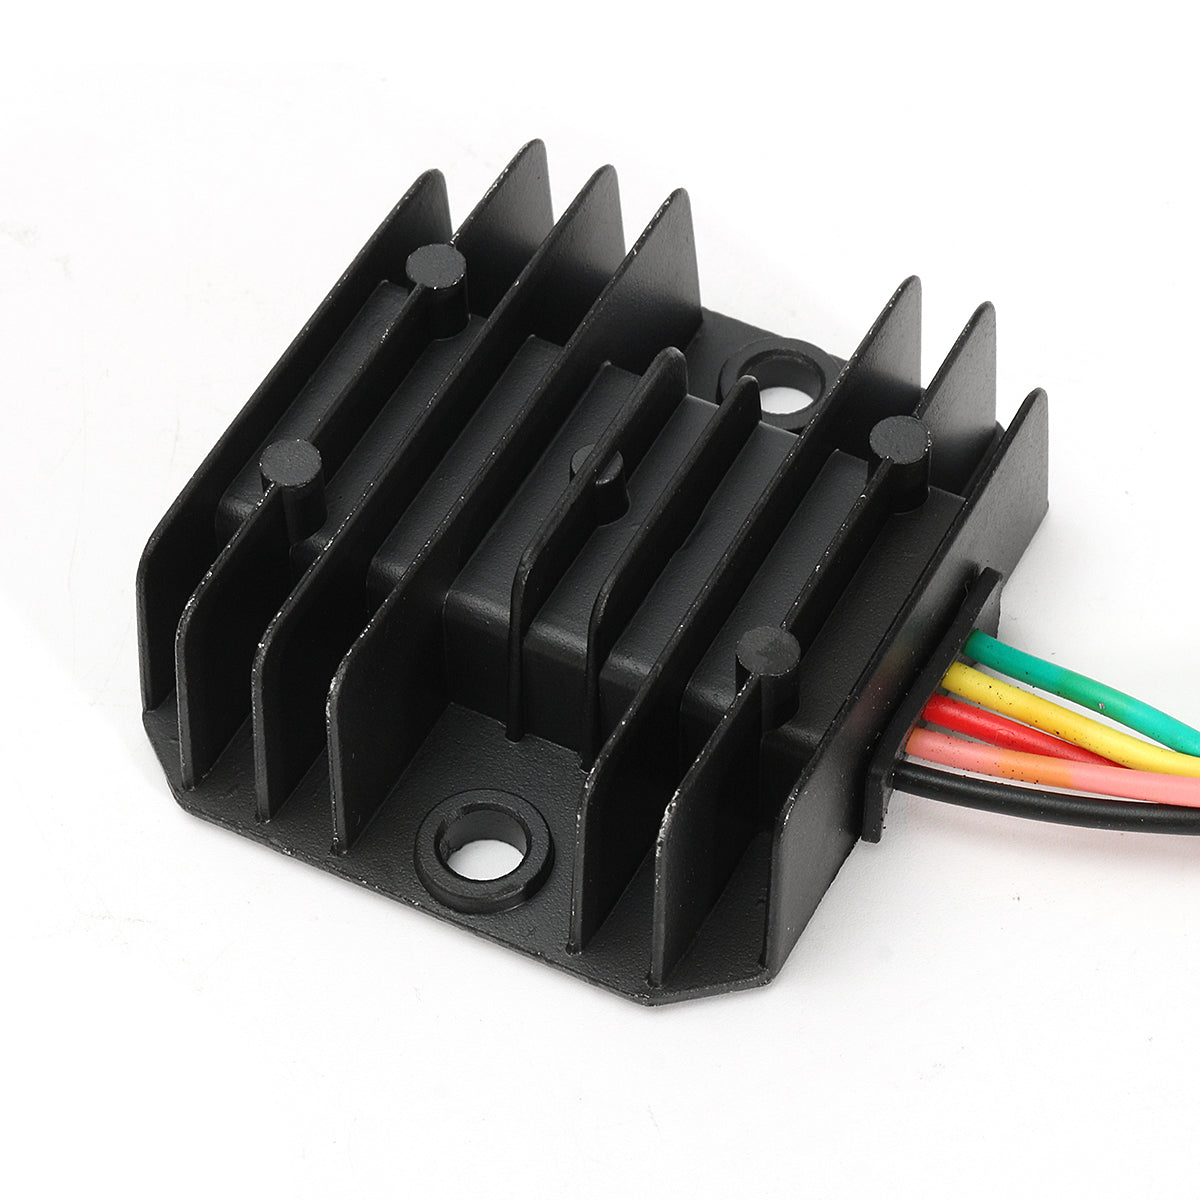 Baotian Wire Diagram 50cc Panterra Retro 12v 5 Wires Regulator Rectifier For 125cc Chinese Atv Quad Scooter Motorcycle